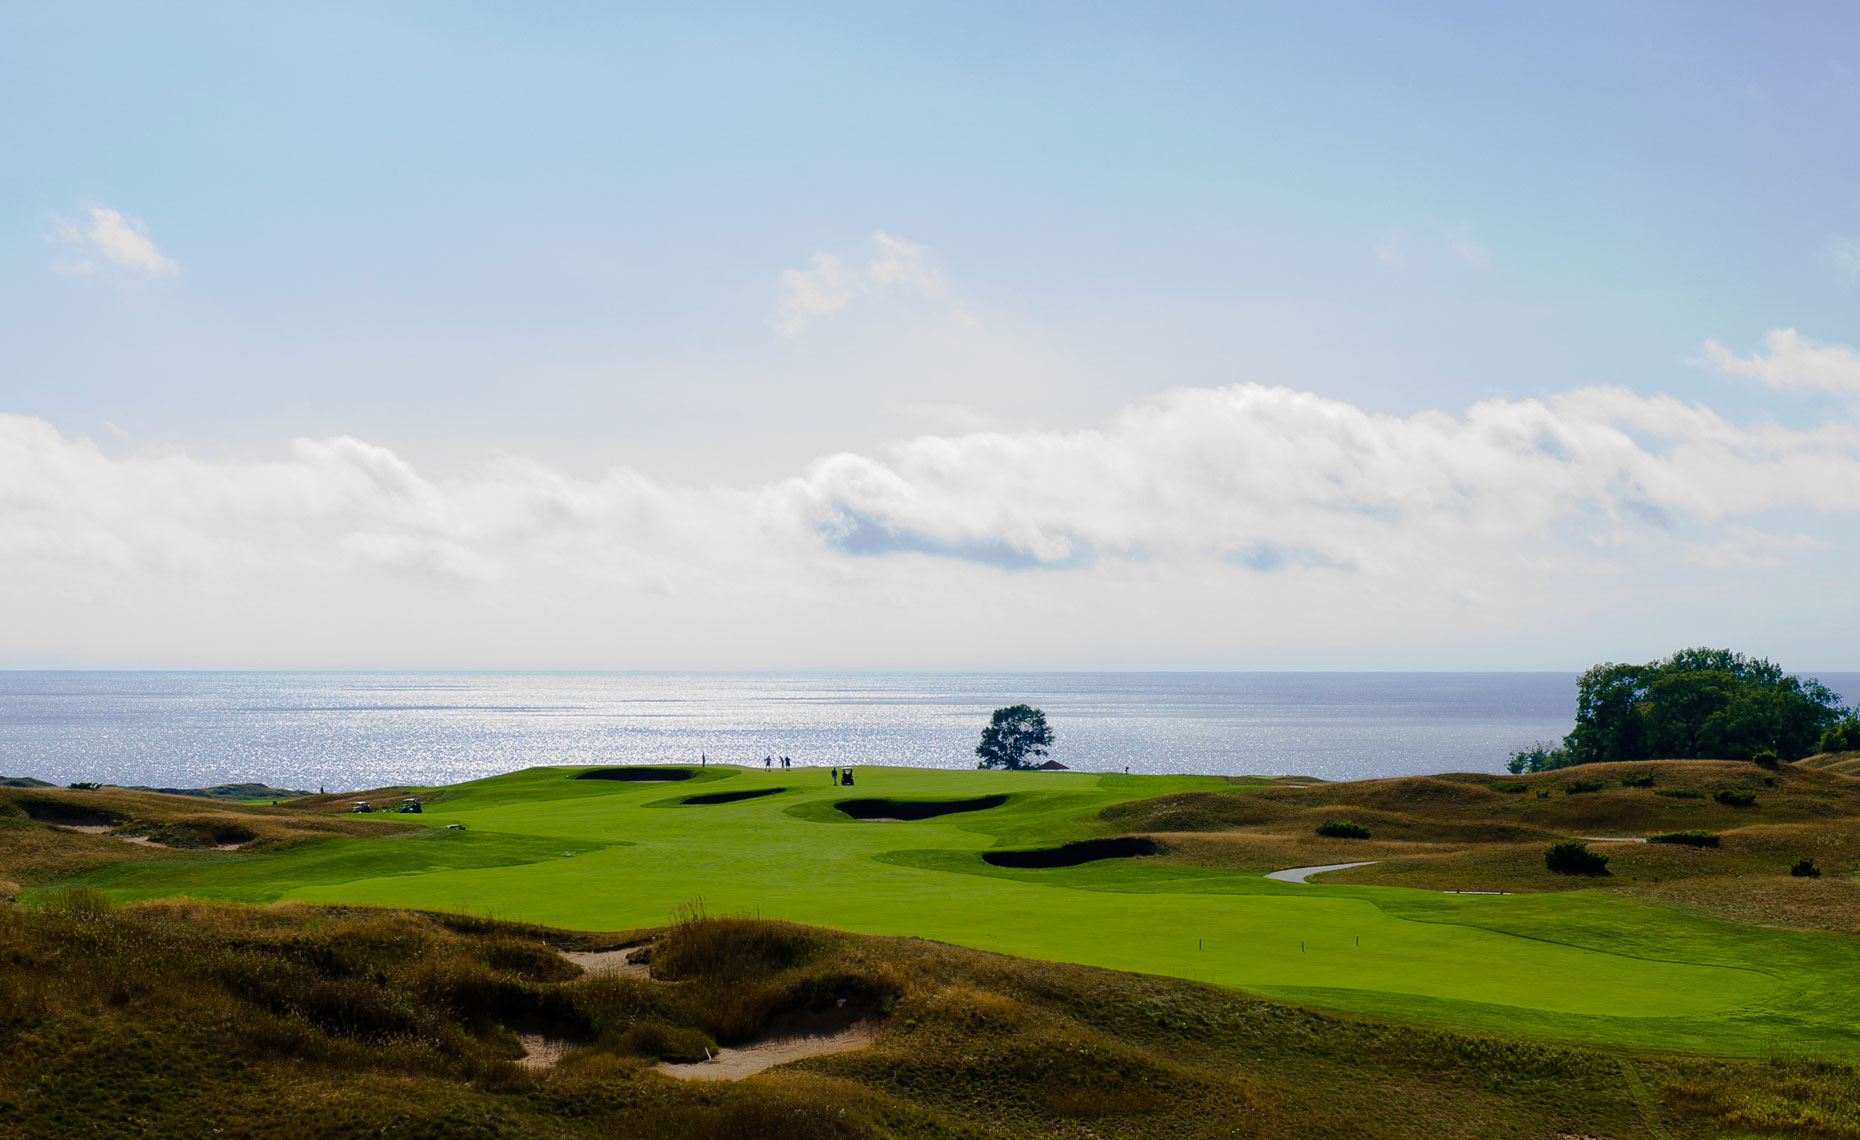 Neil-Colton-photographer-arcadia-bluffs-gc-fine-art-101-wr